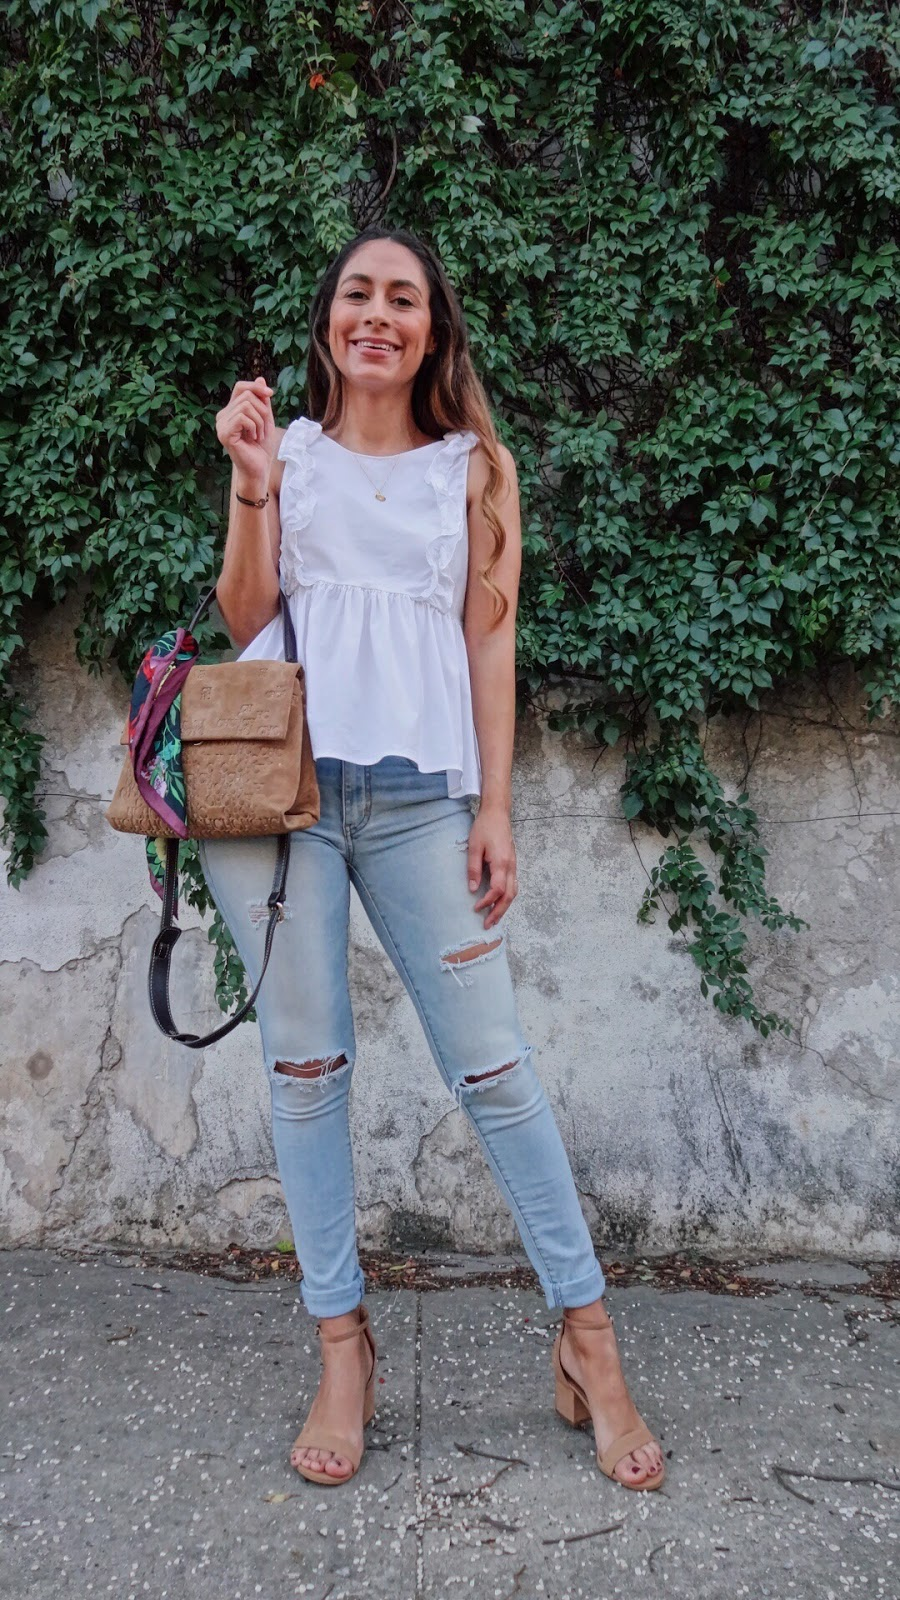 Top/Blusa: Zara (old, similar here, here, and here) Jeans/Mahon: American  Eagle (old, similar here) Shoes/Zapatos: Steve Madden Bag/Cartera: Carolina  ...